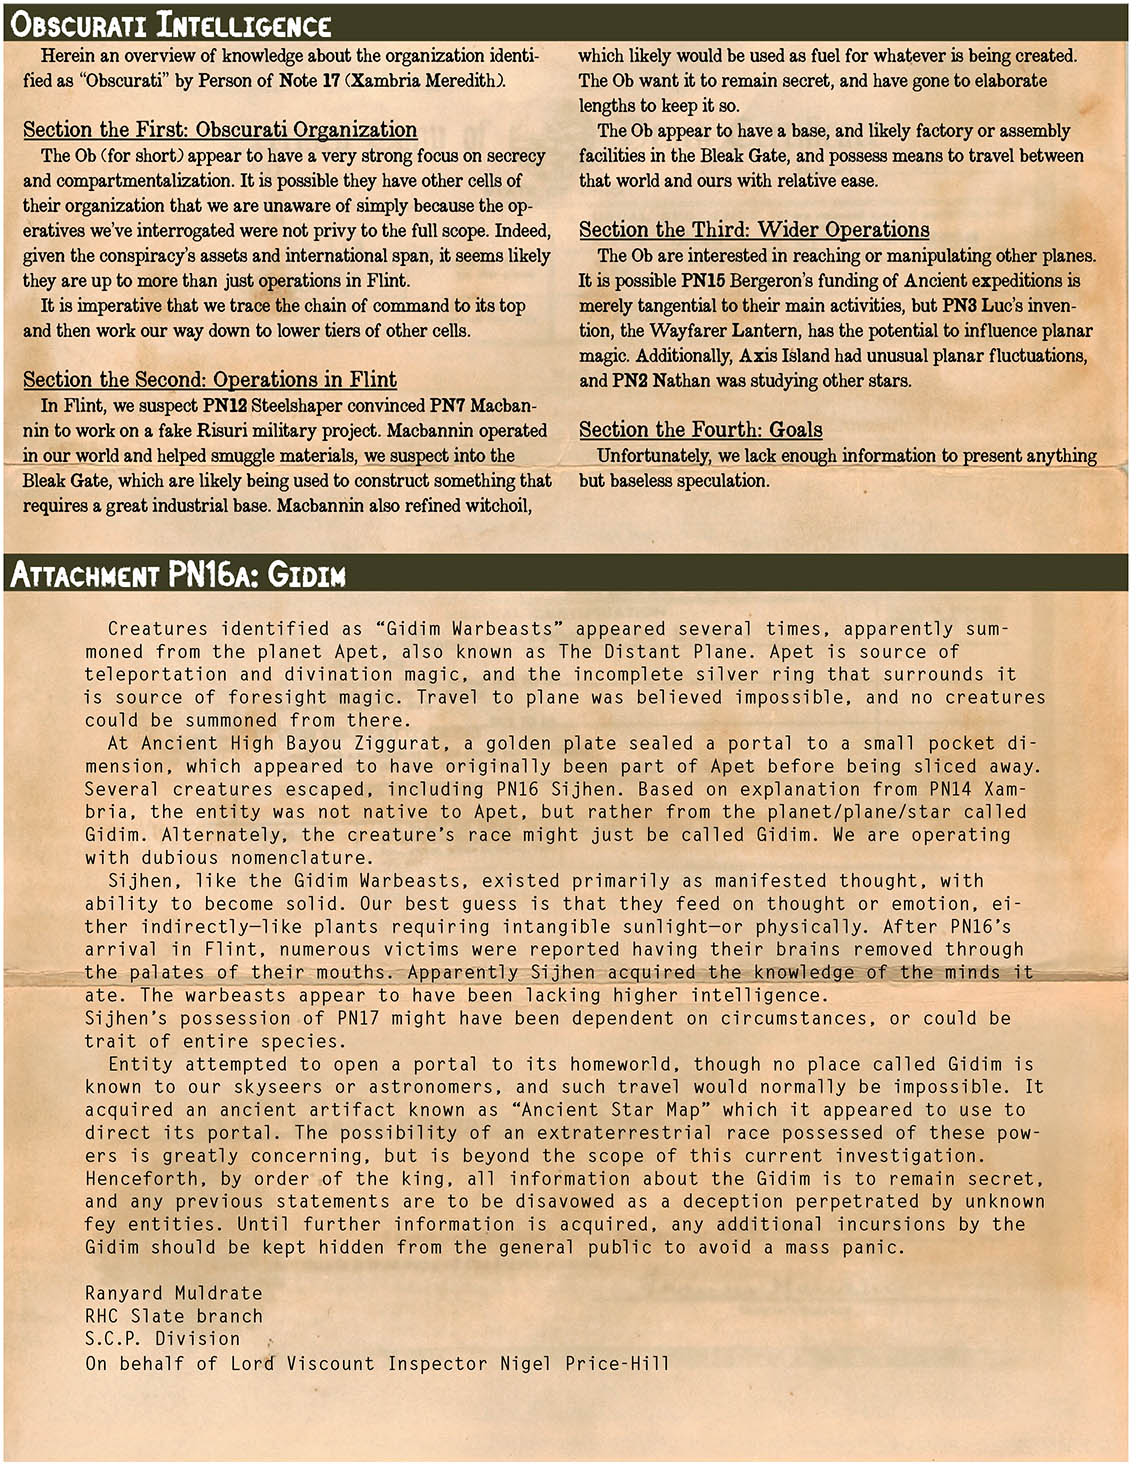 Peace_Summit_Dossier_Page_3.jpg